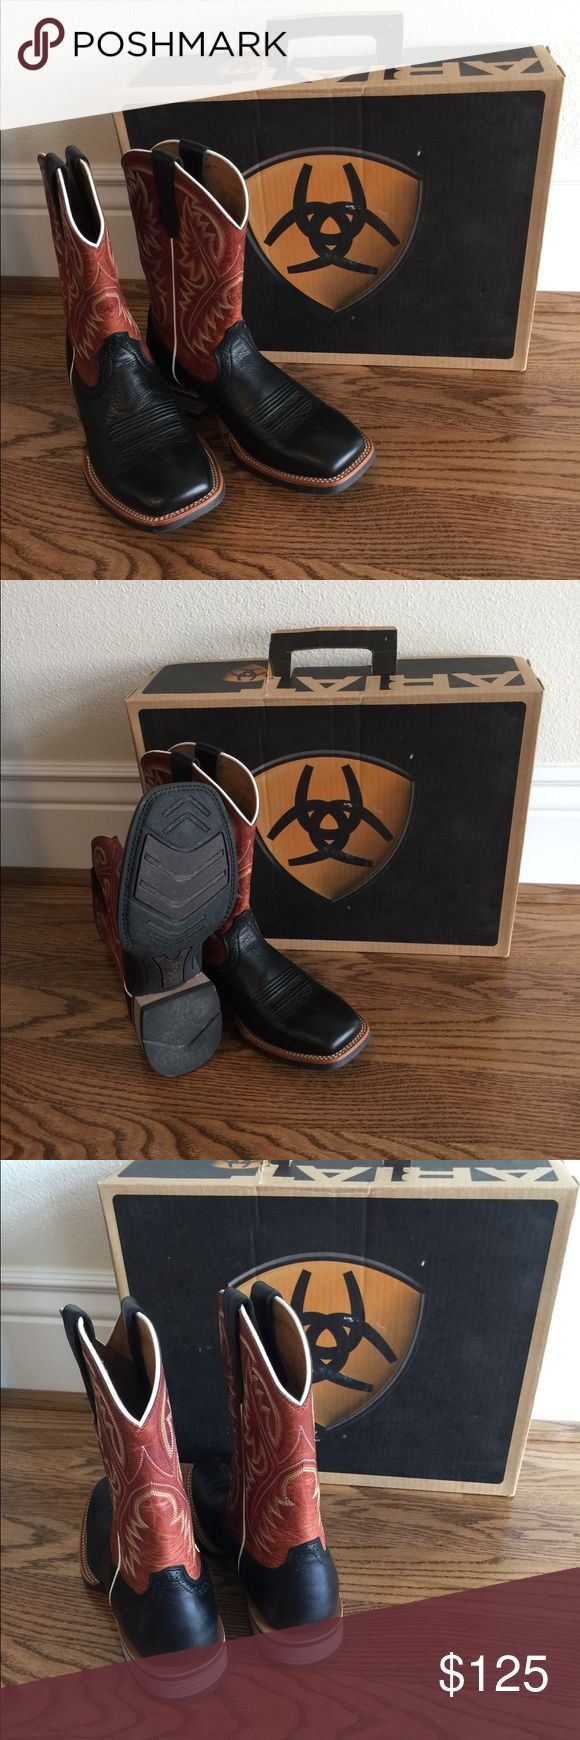 Men's Ariat boots Men's never nice Ariat boots! Only worn one once! They are a very sharp looking pair of boots! Ariat Shoes Cowboy & Western Boots